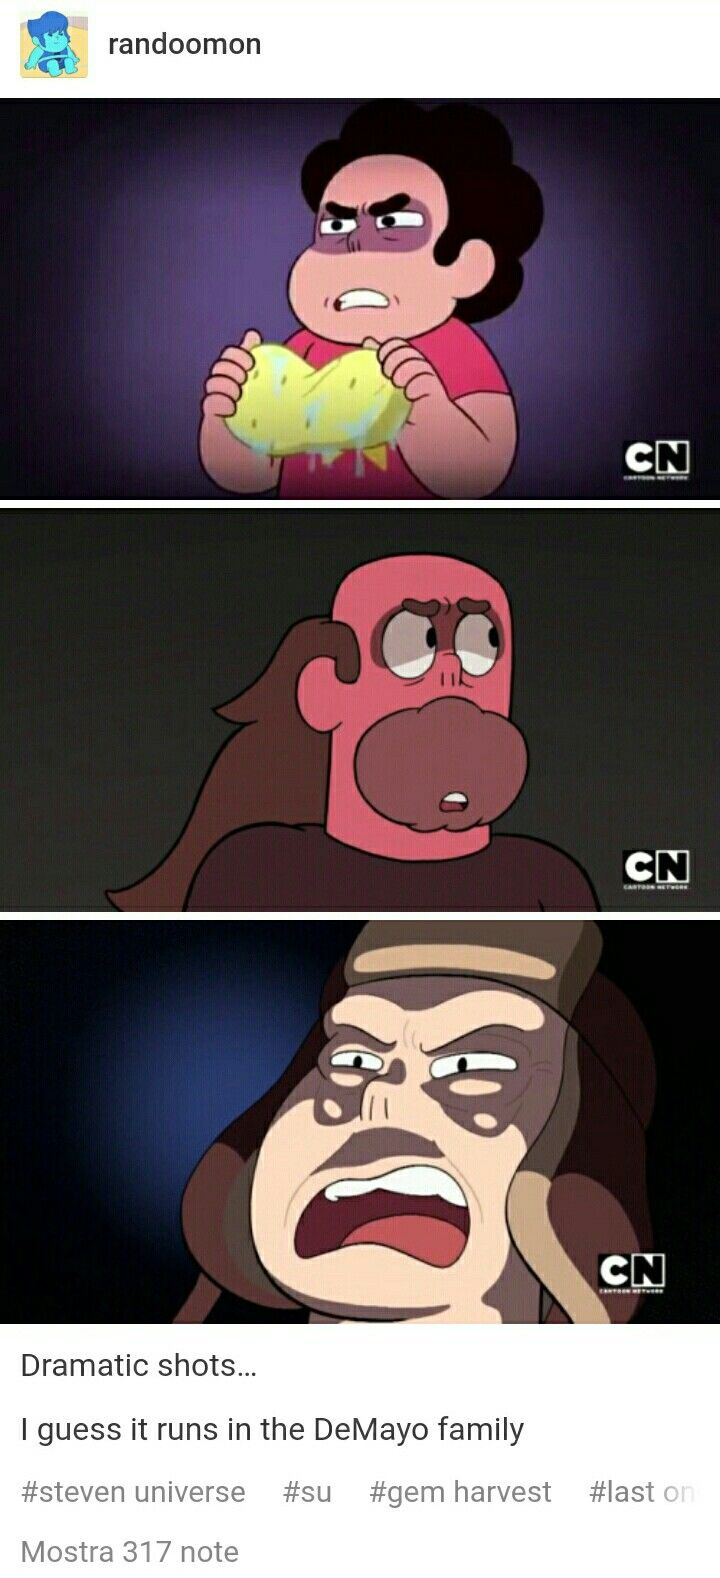 And people say Steven universe isn't an anime